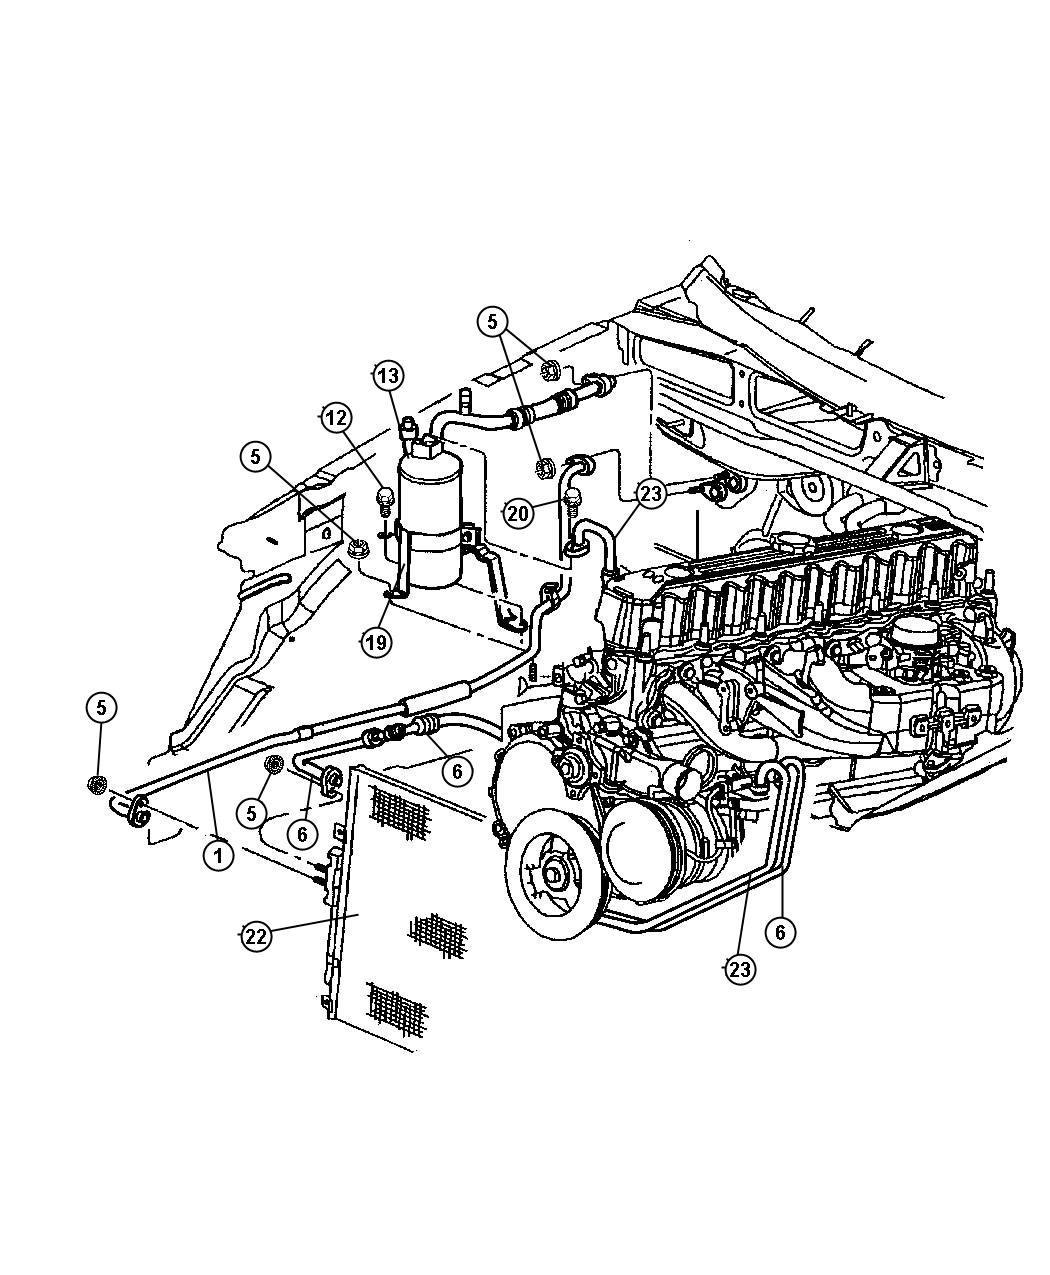 pontiac vibe air conditioning diagram